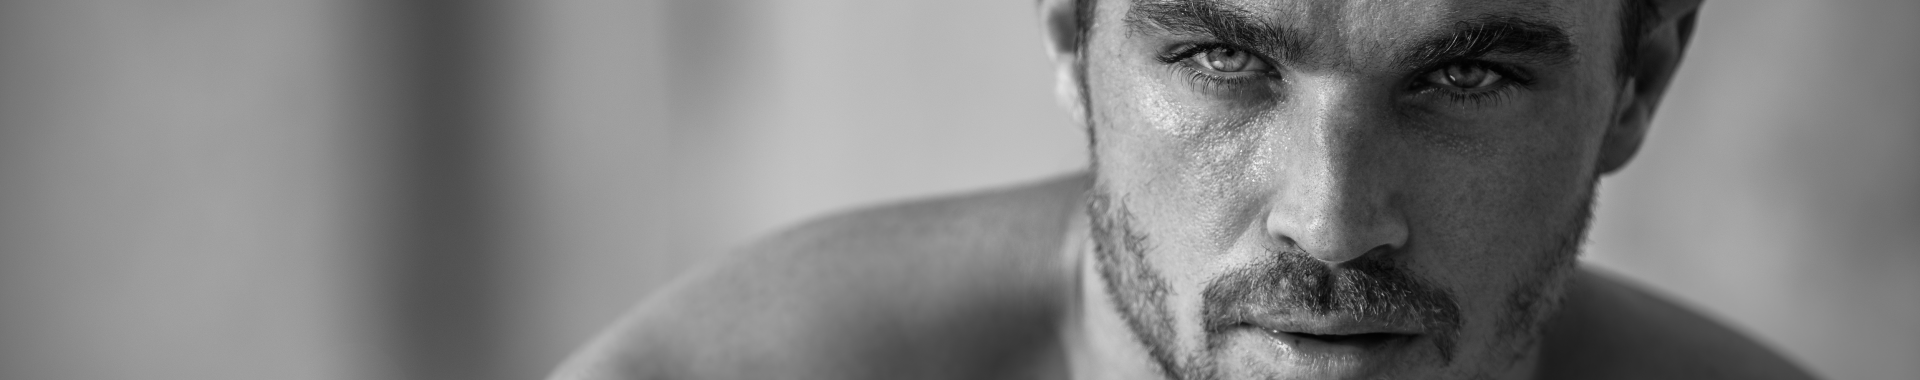 thirty something male model with chiselled facial features